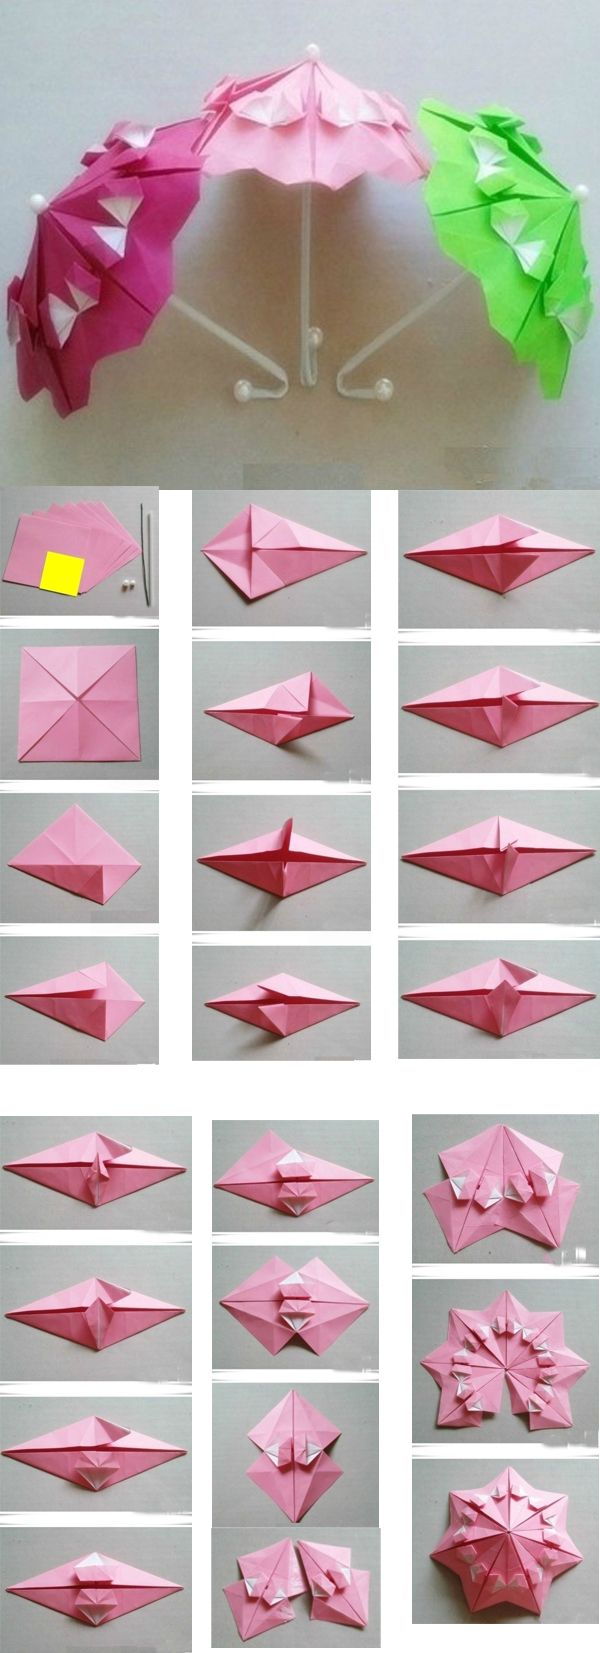 Diy guarda chuva origami